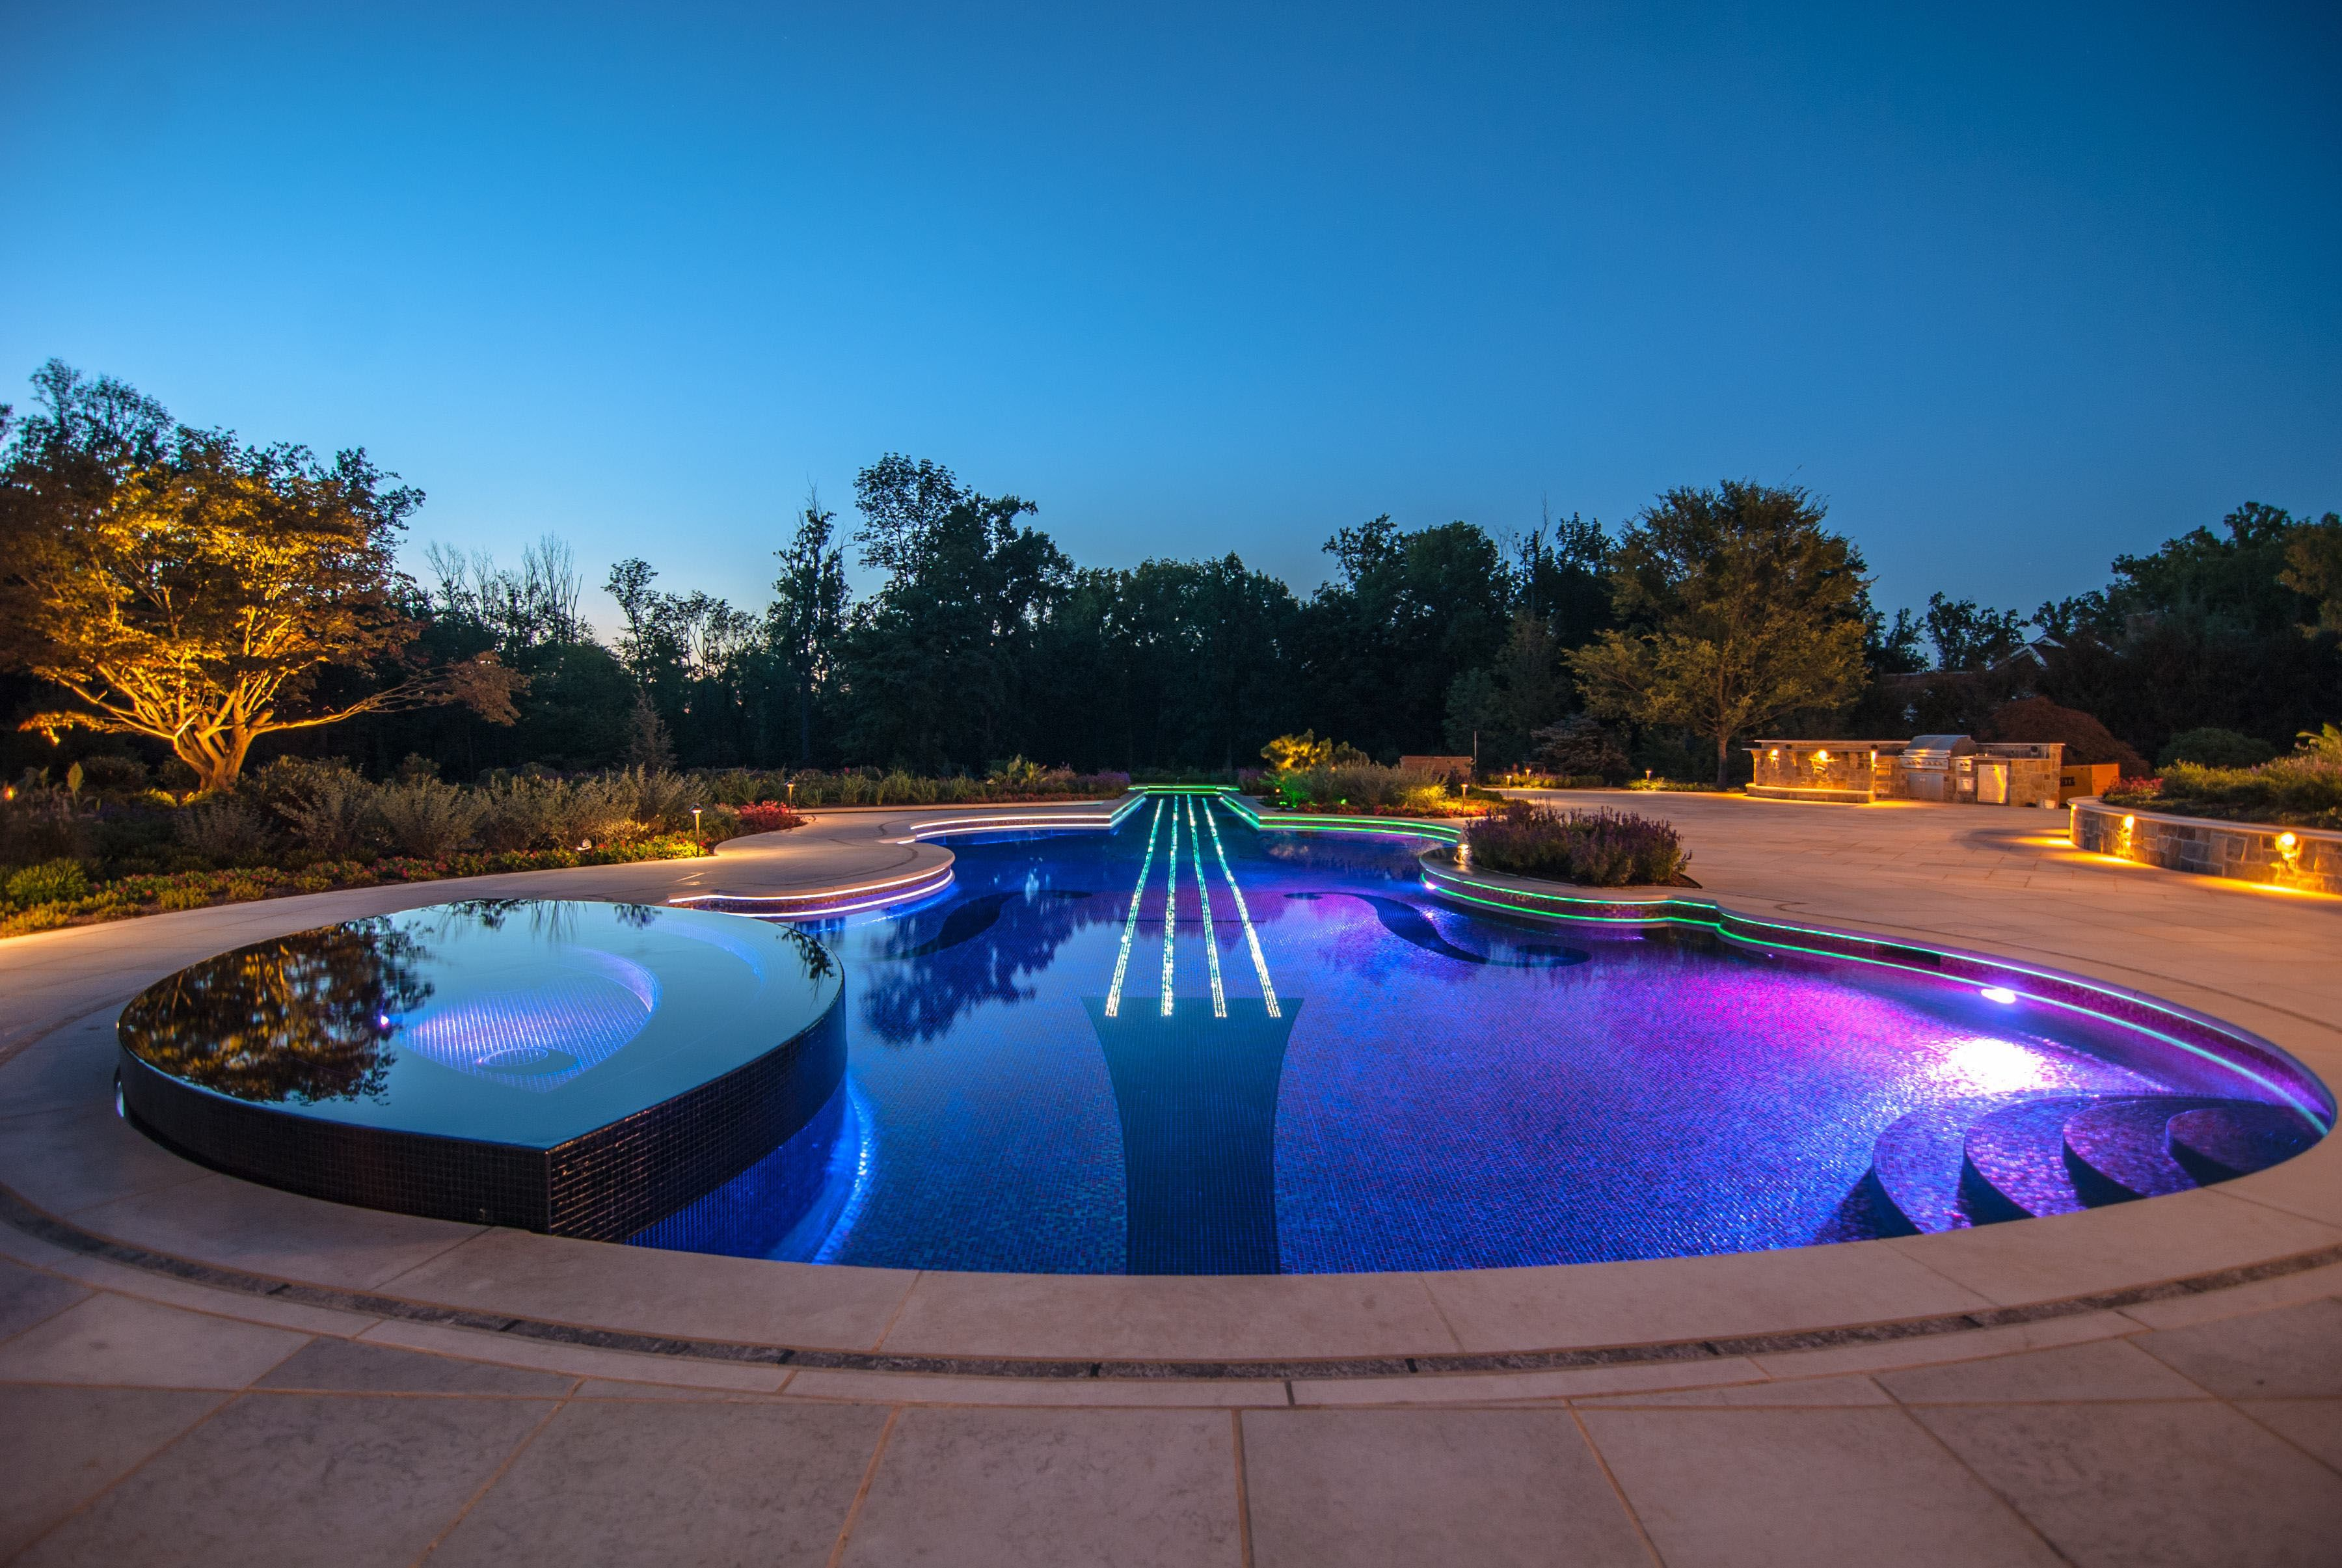 The Ultimate in Backyard Accommodation: Misters, Lighting ...